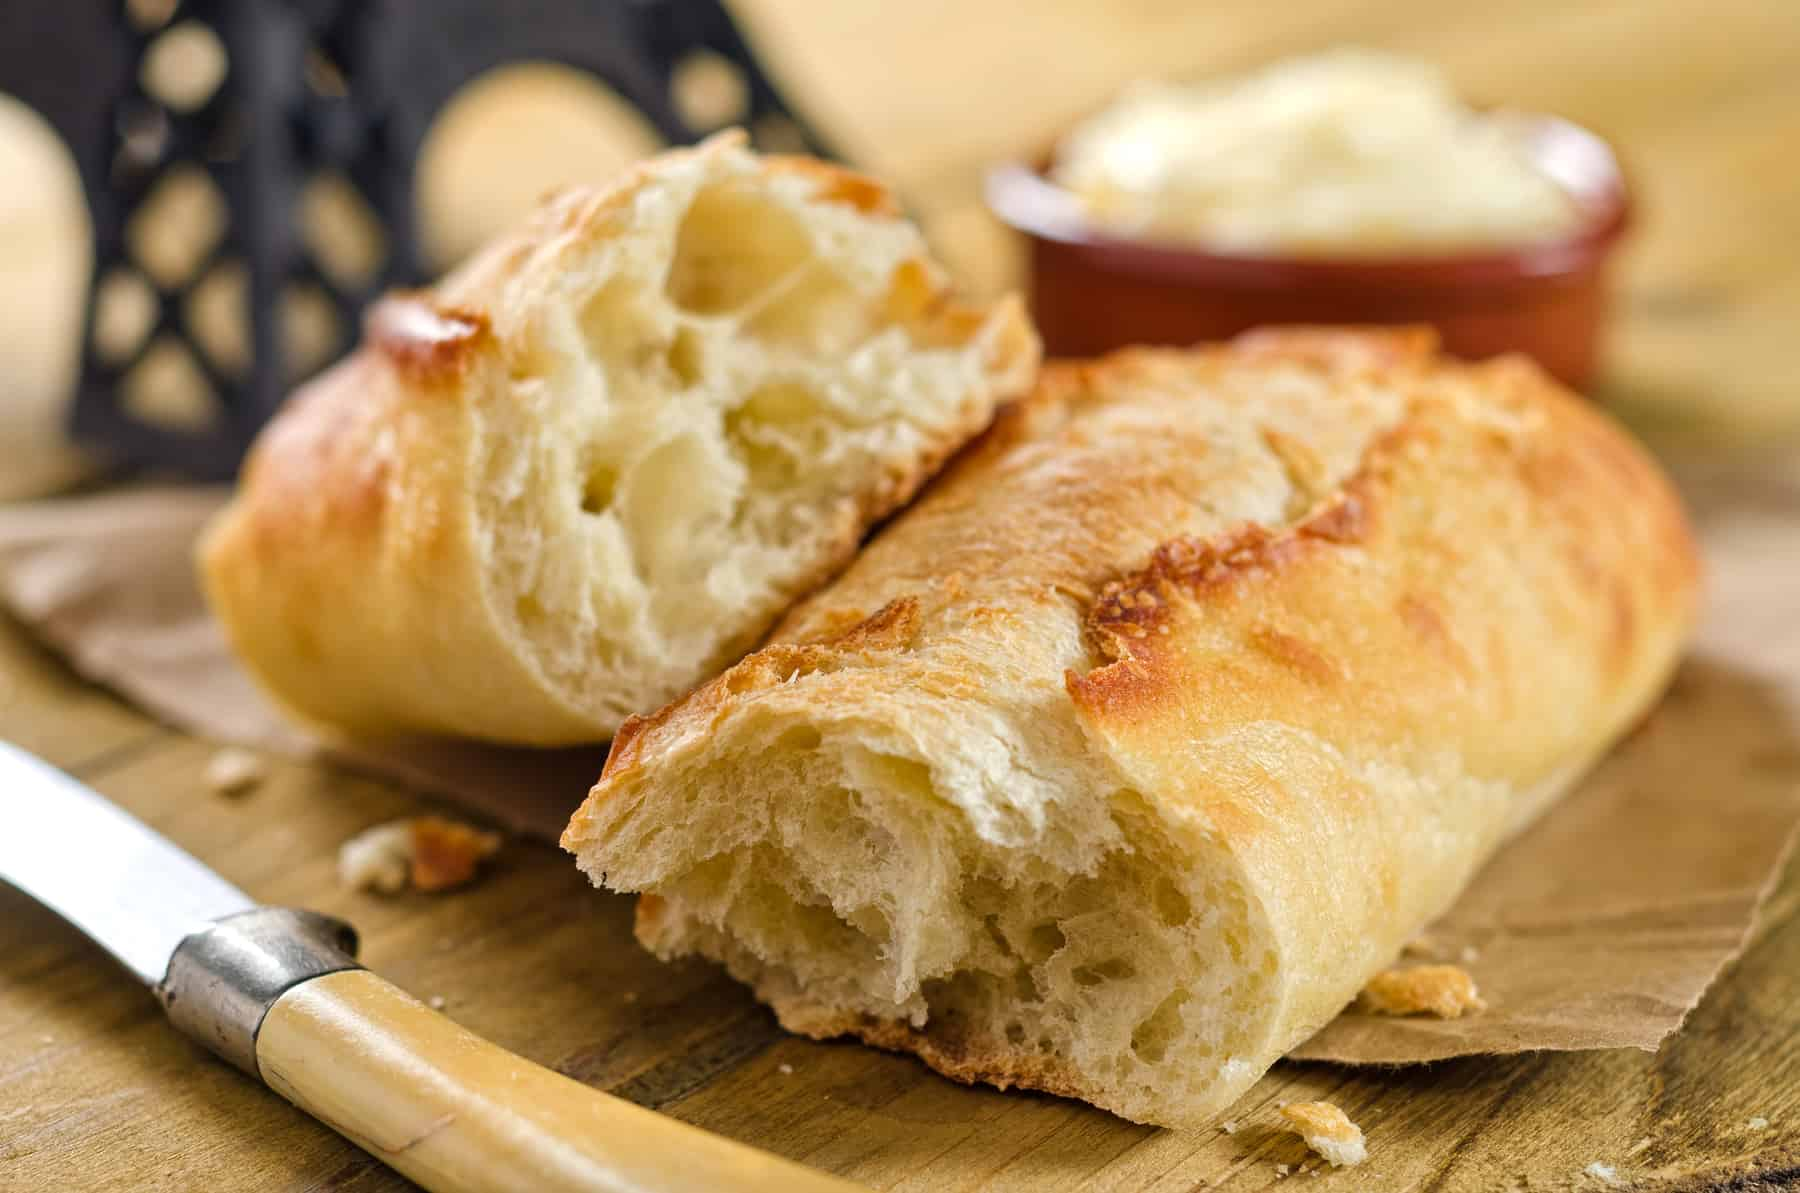 French Bread called Baguette and indispensable